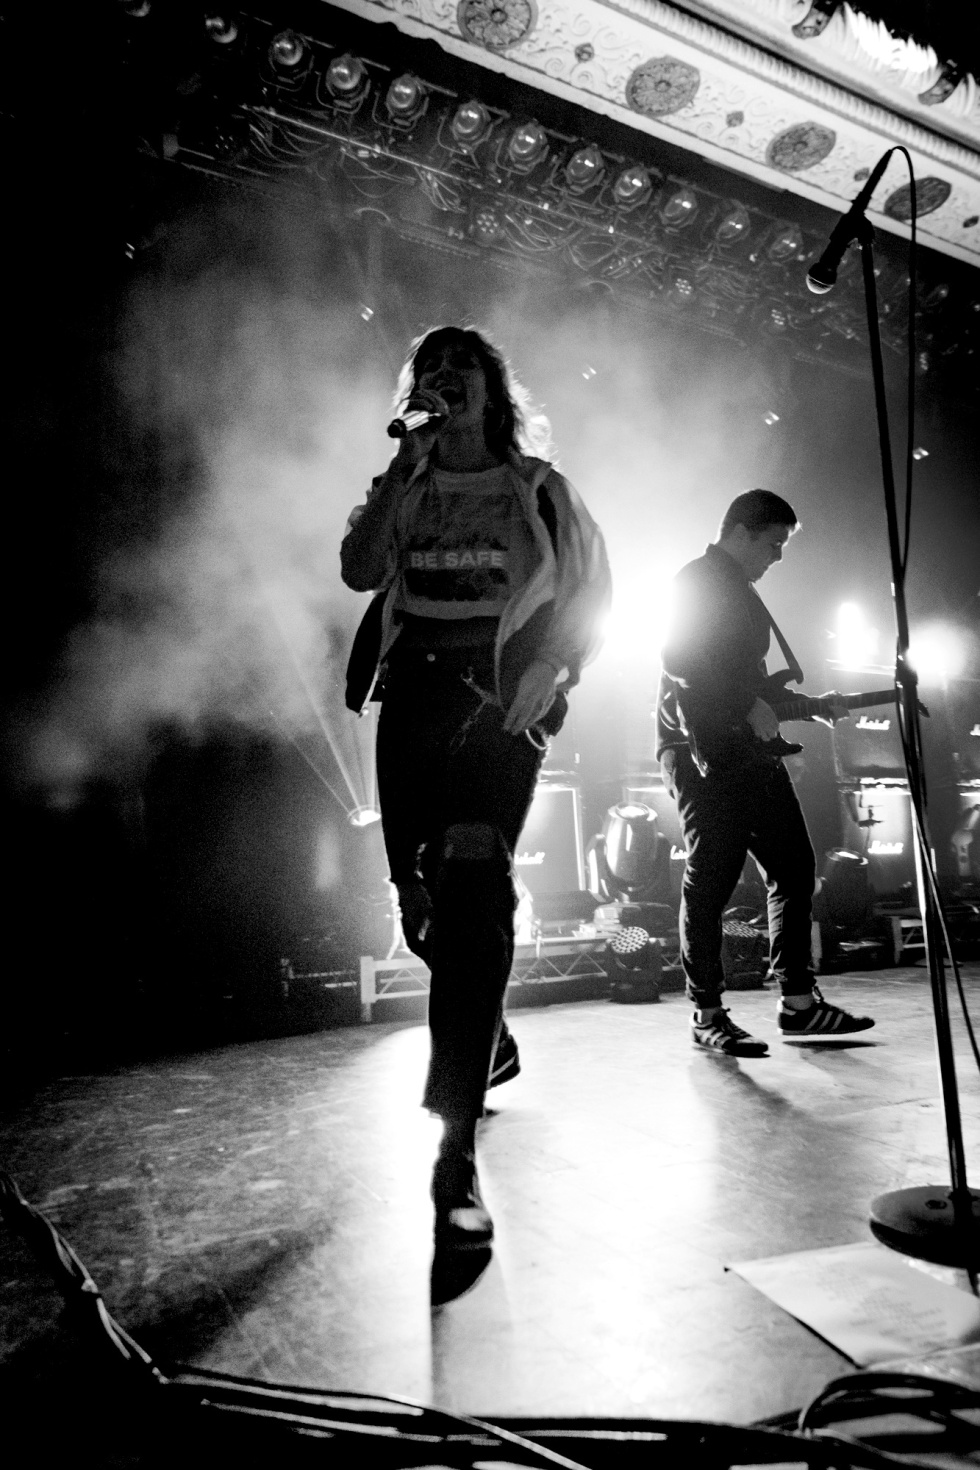 apple-ss-sleigh-bells-11